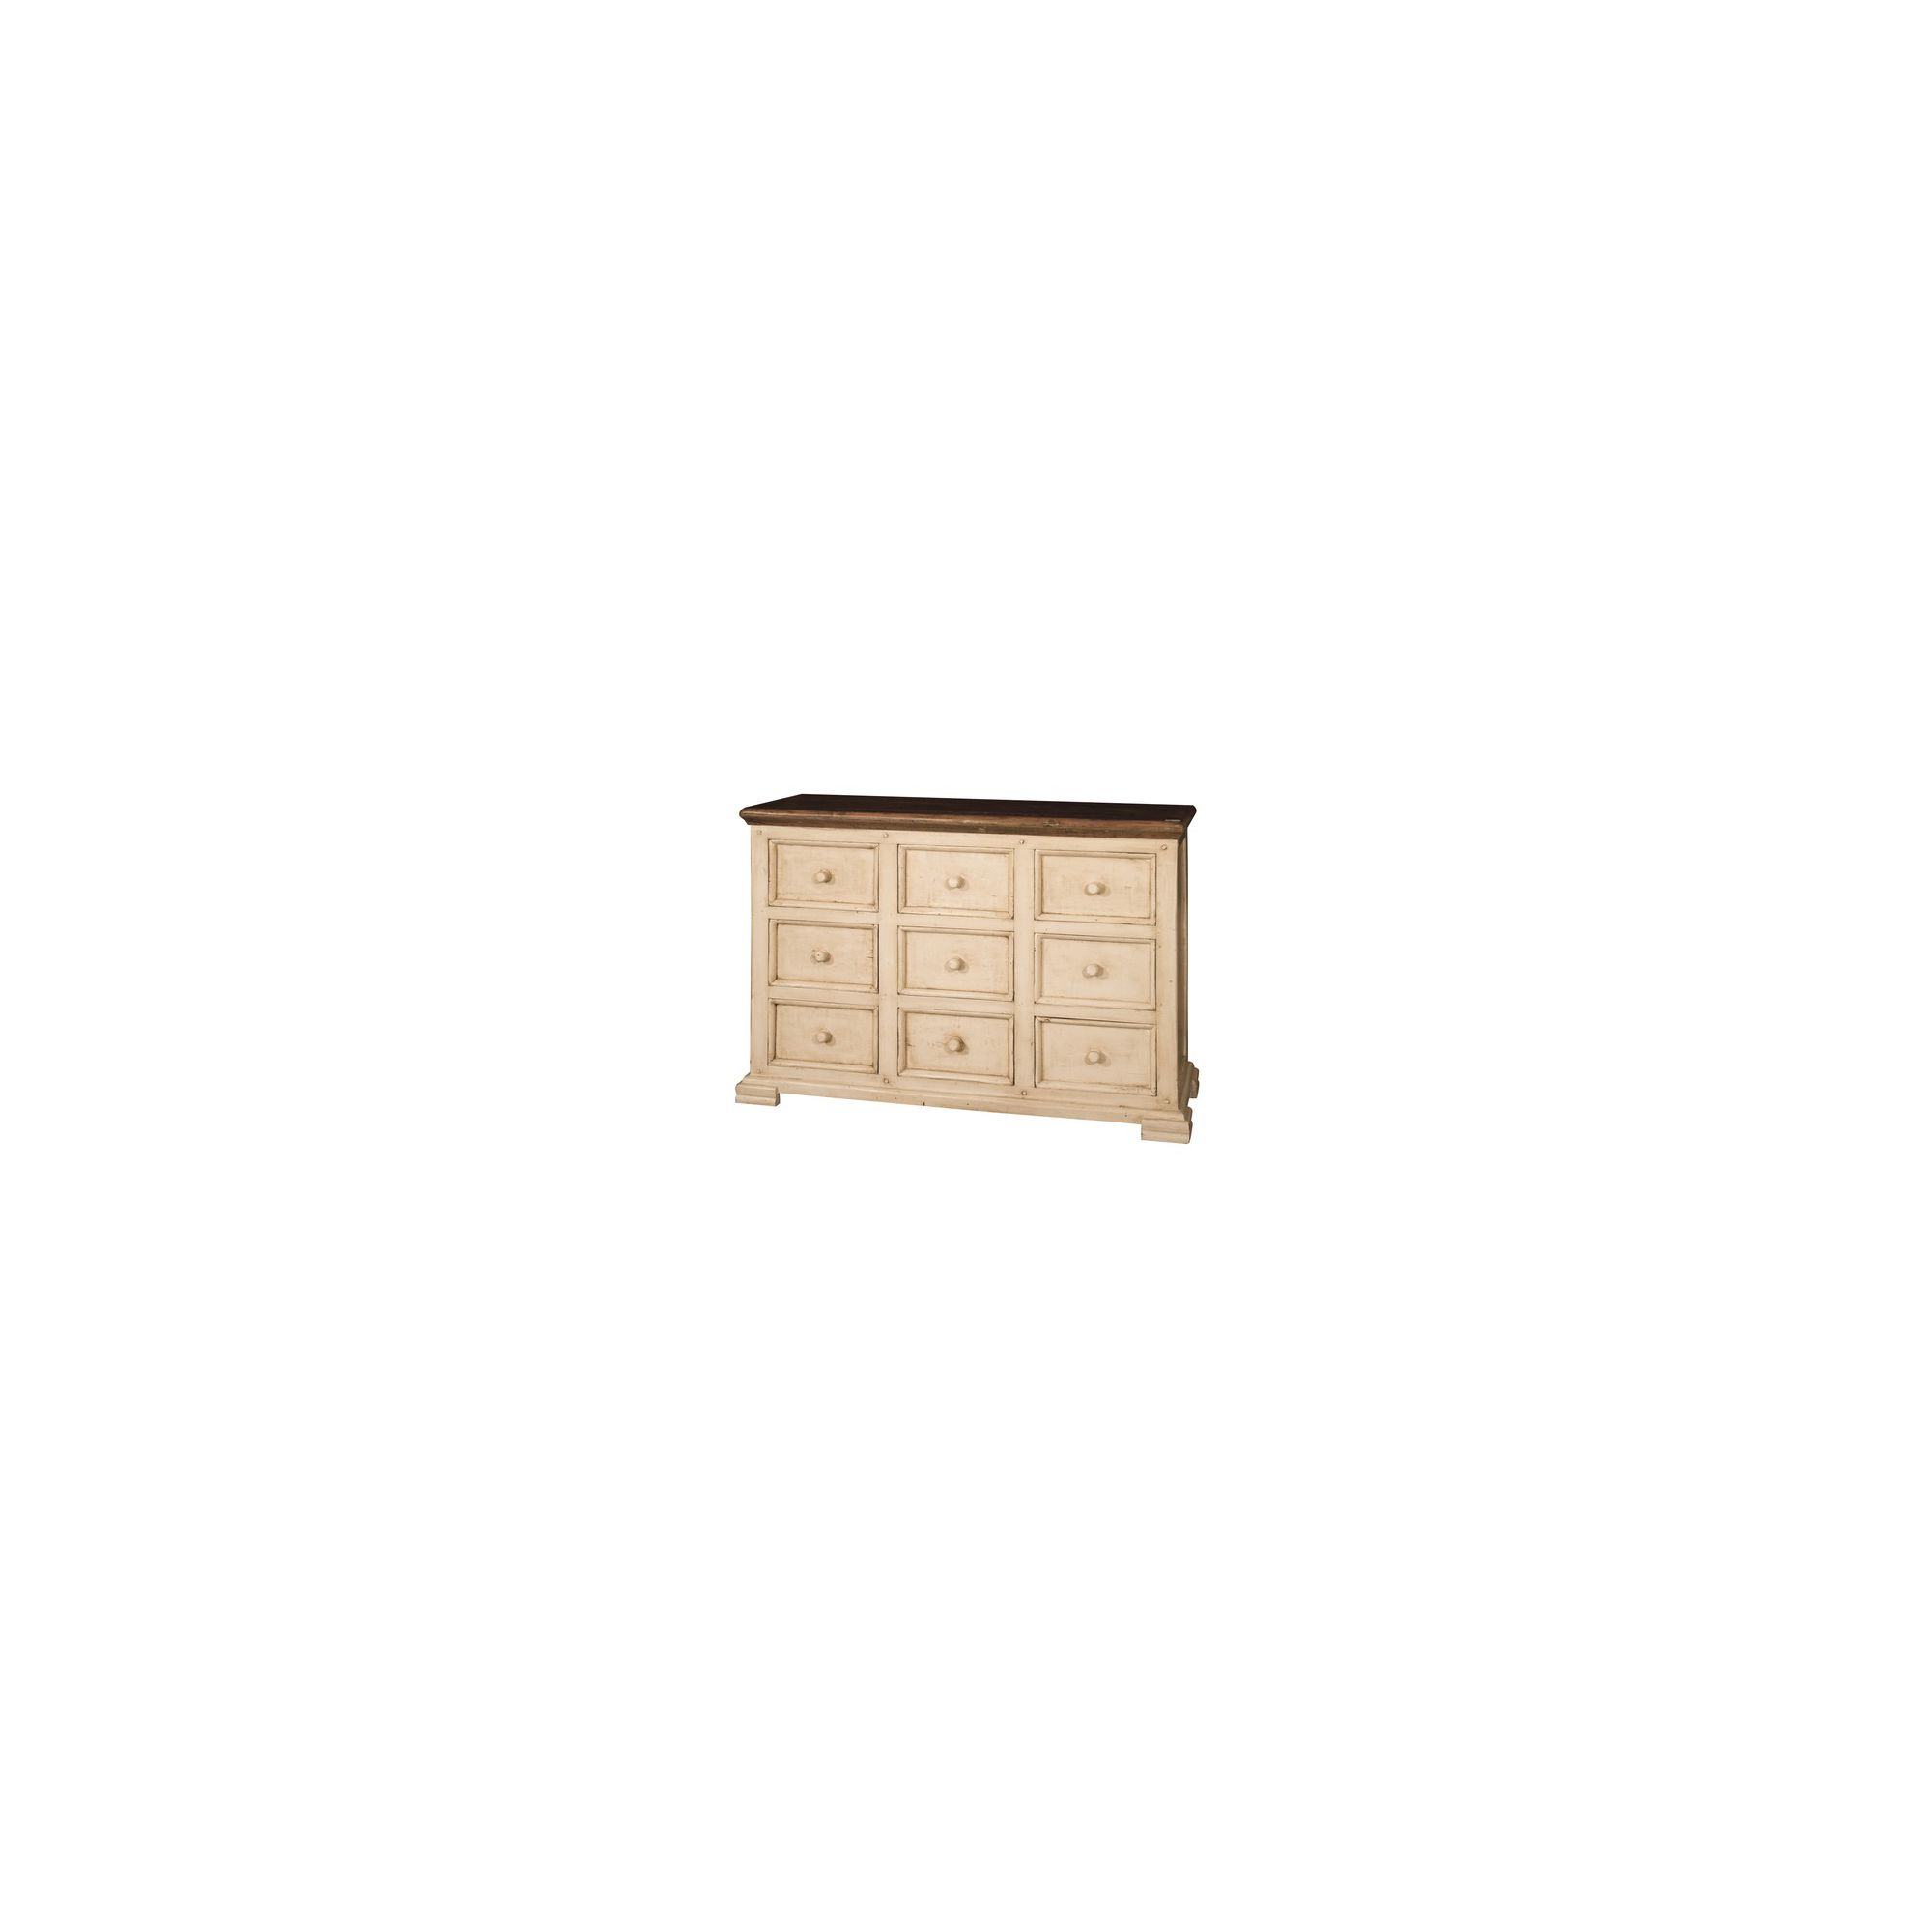 Alterton Furniture Auriol 9 Drawer Chest at Tesco Direct